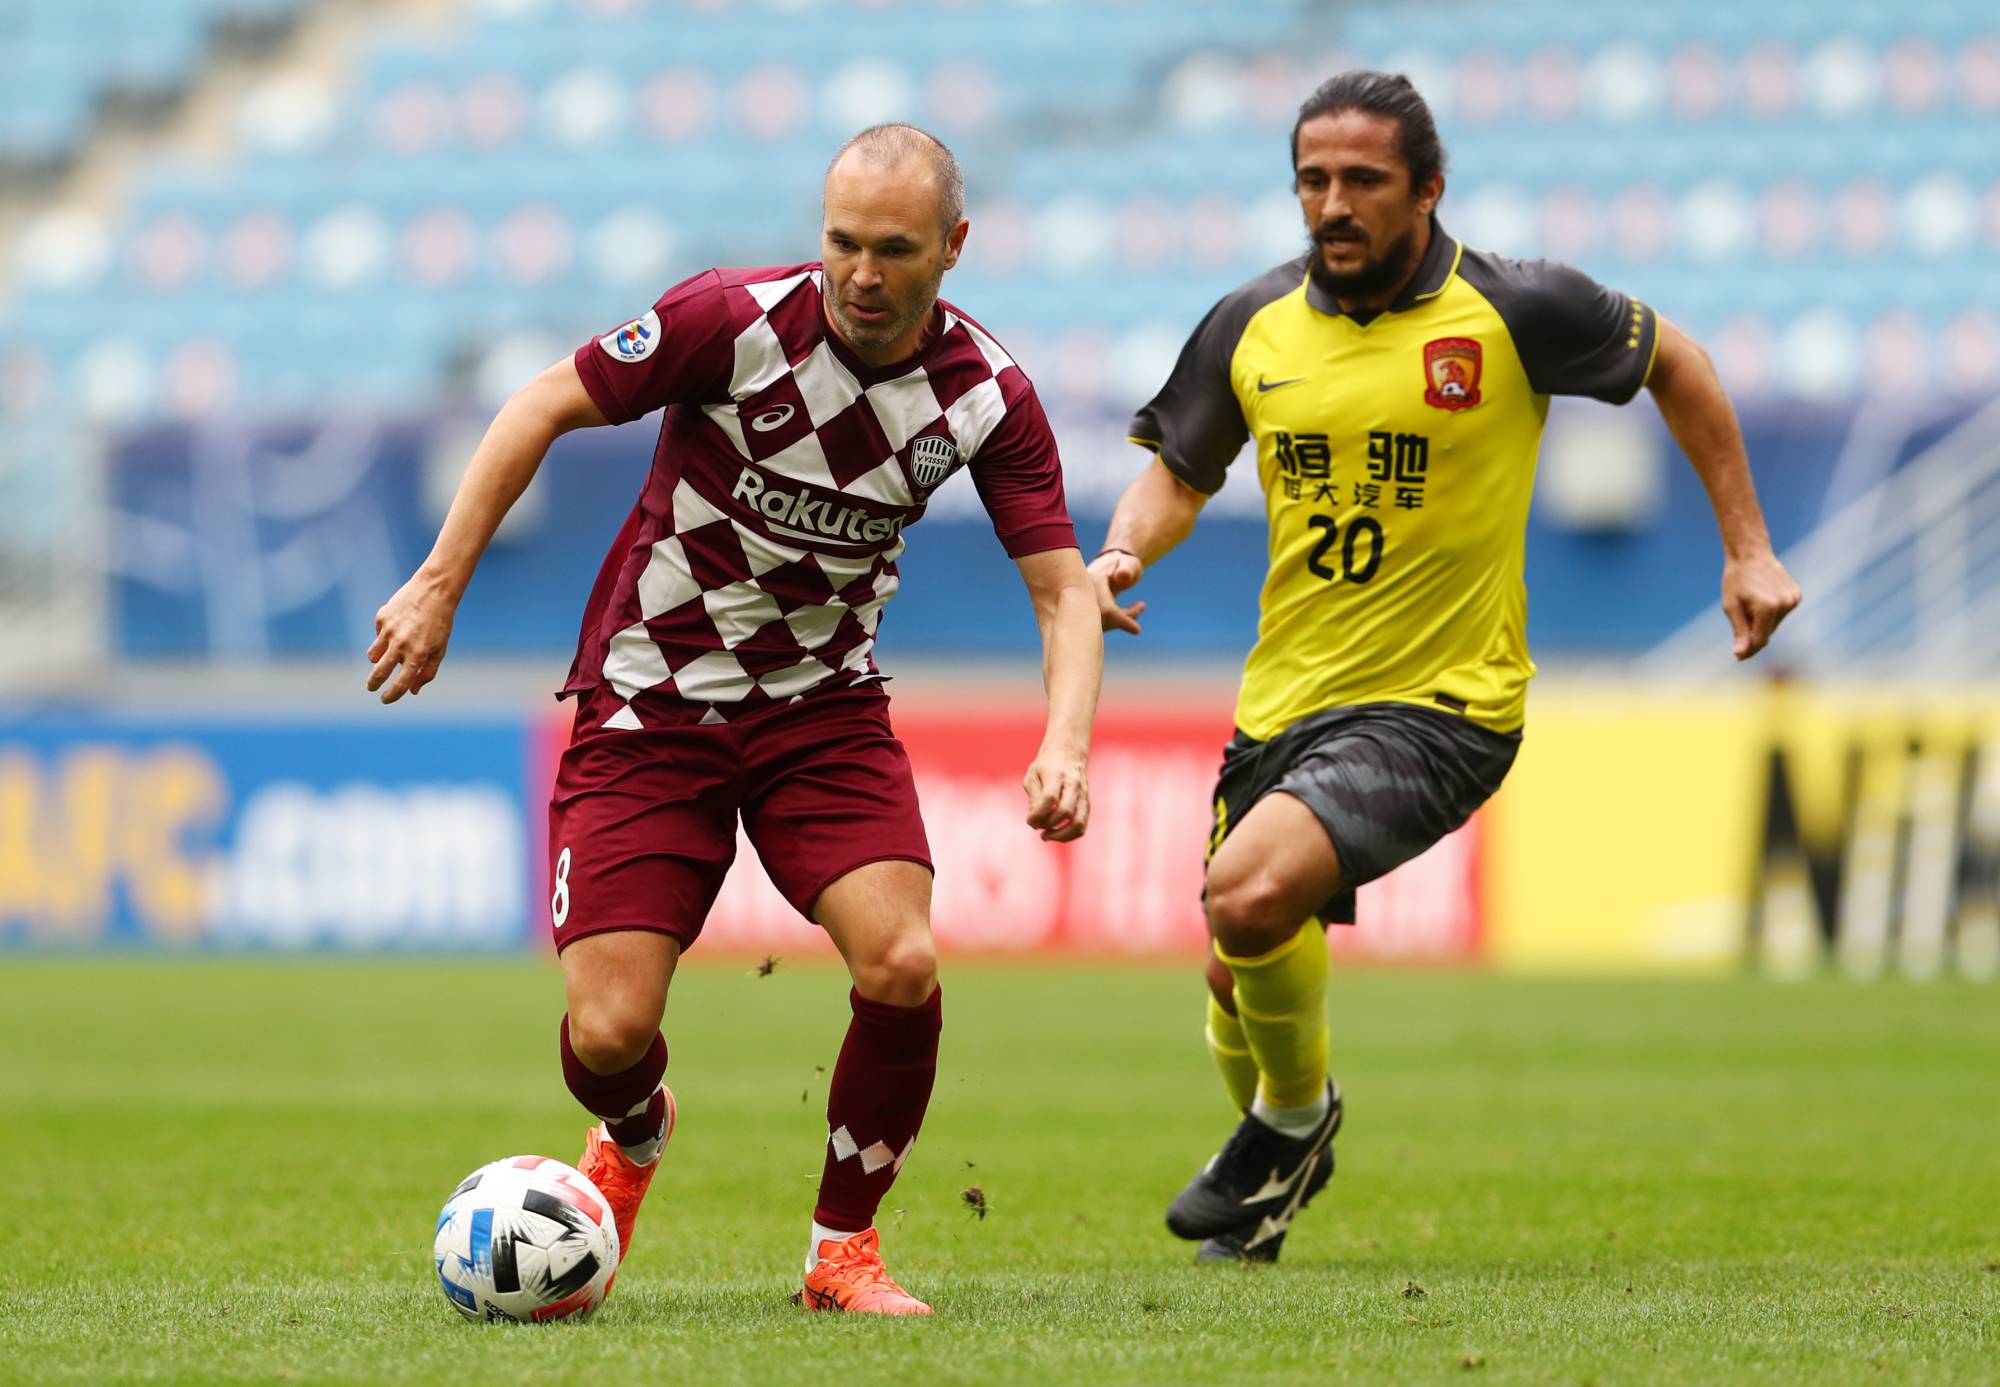 Vissel's Andres Iniesta is pursued by Evergrande's Luo Guofu during an Asian Champions League match on Saturday in Al Wakrah, Qatar. | REUTERS